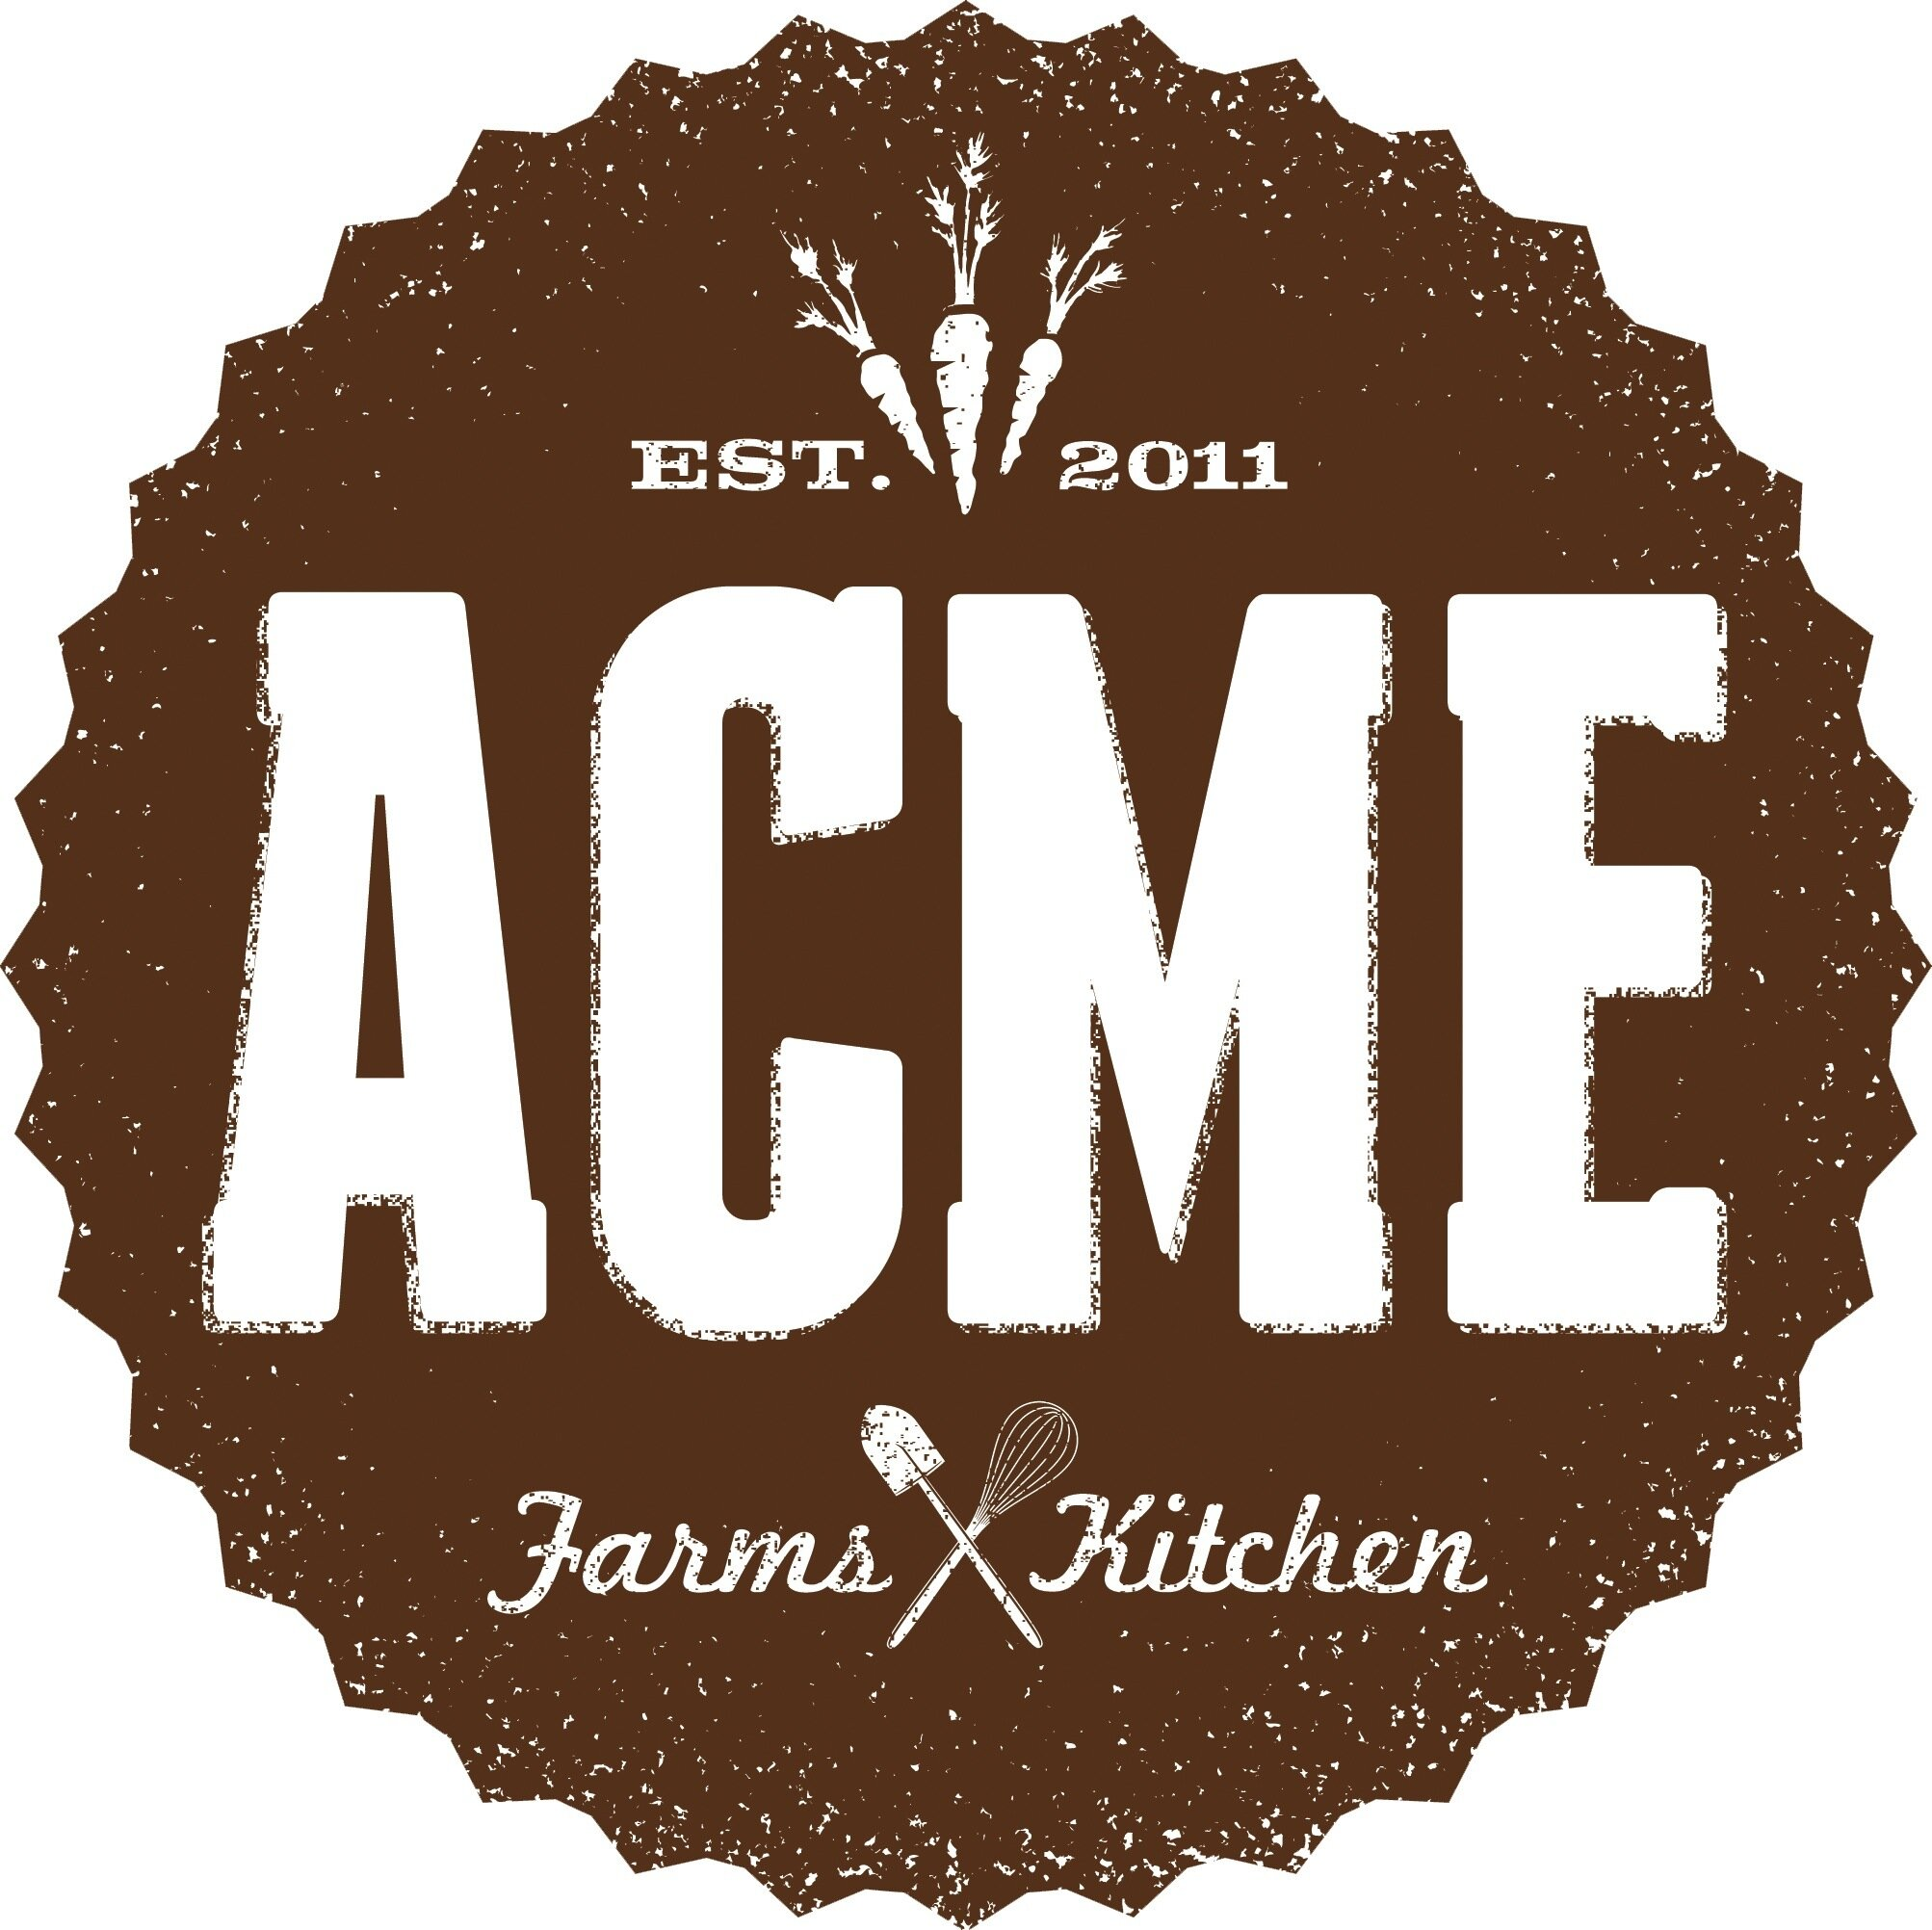 Acme Farms Kitchen Acmefarmkitchen Twitter